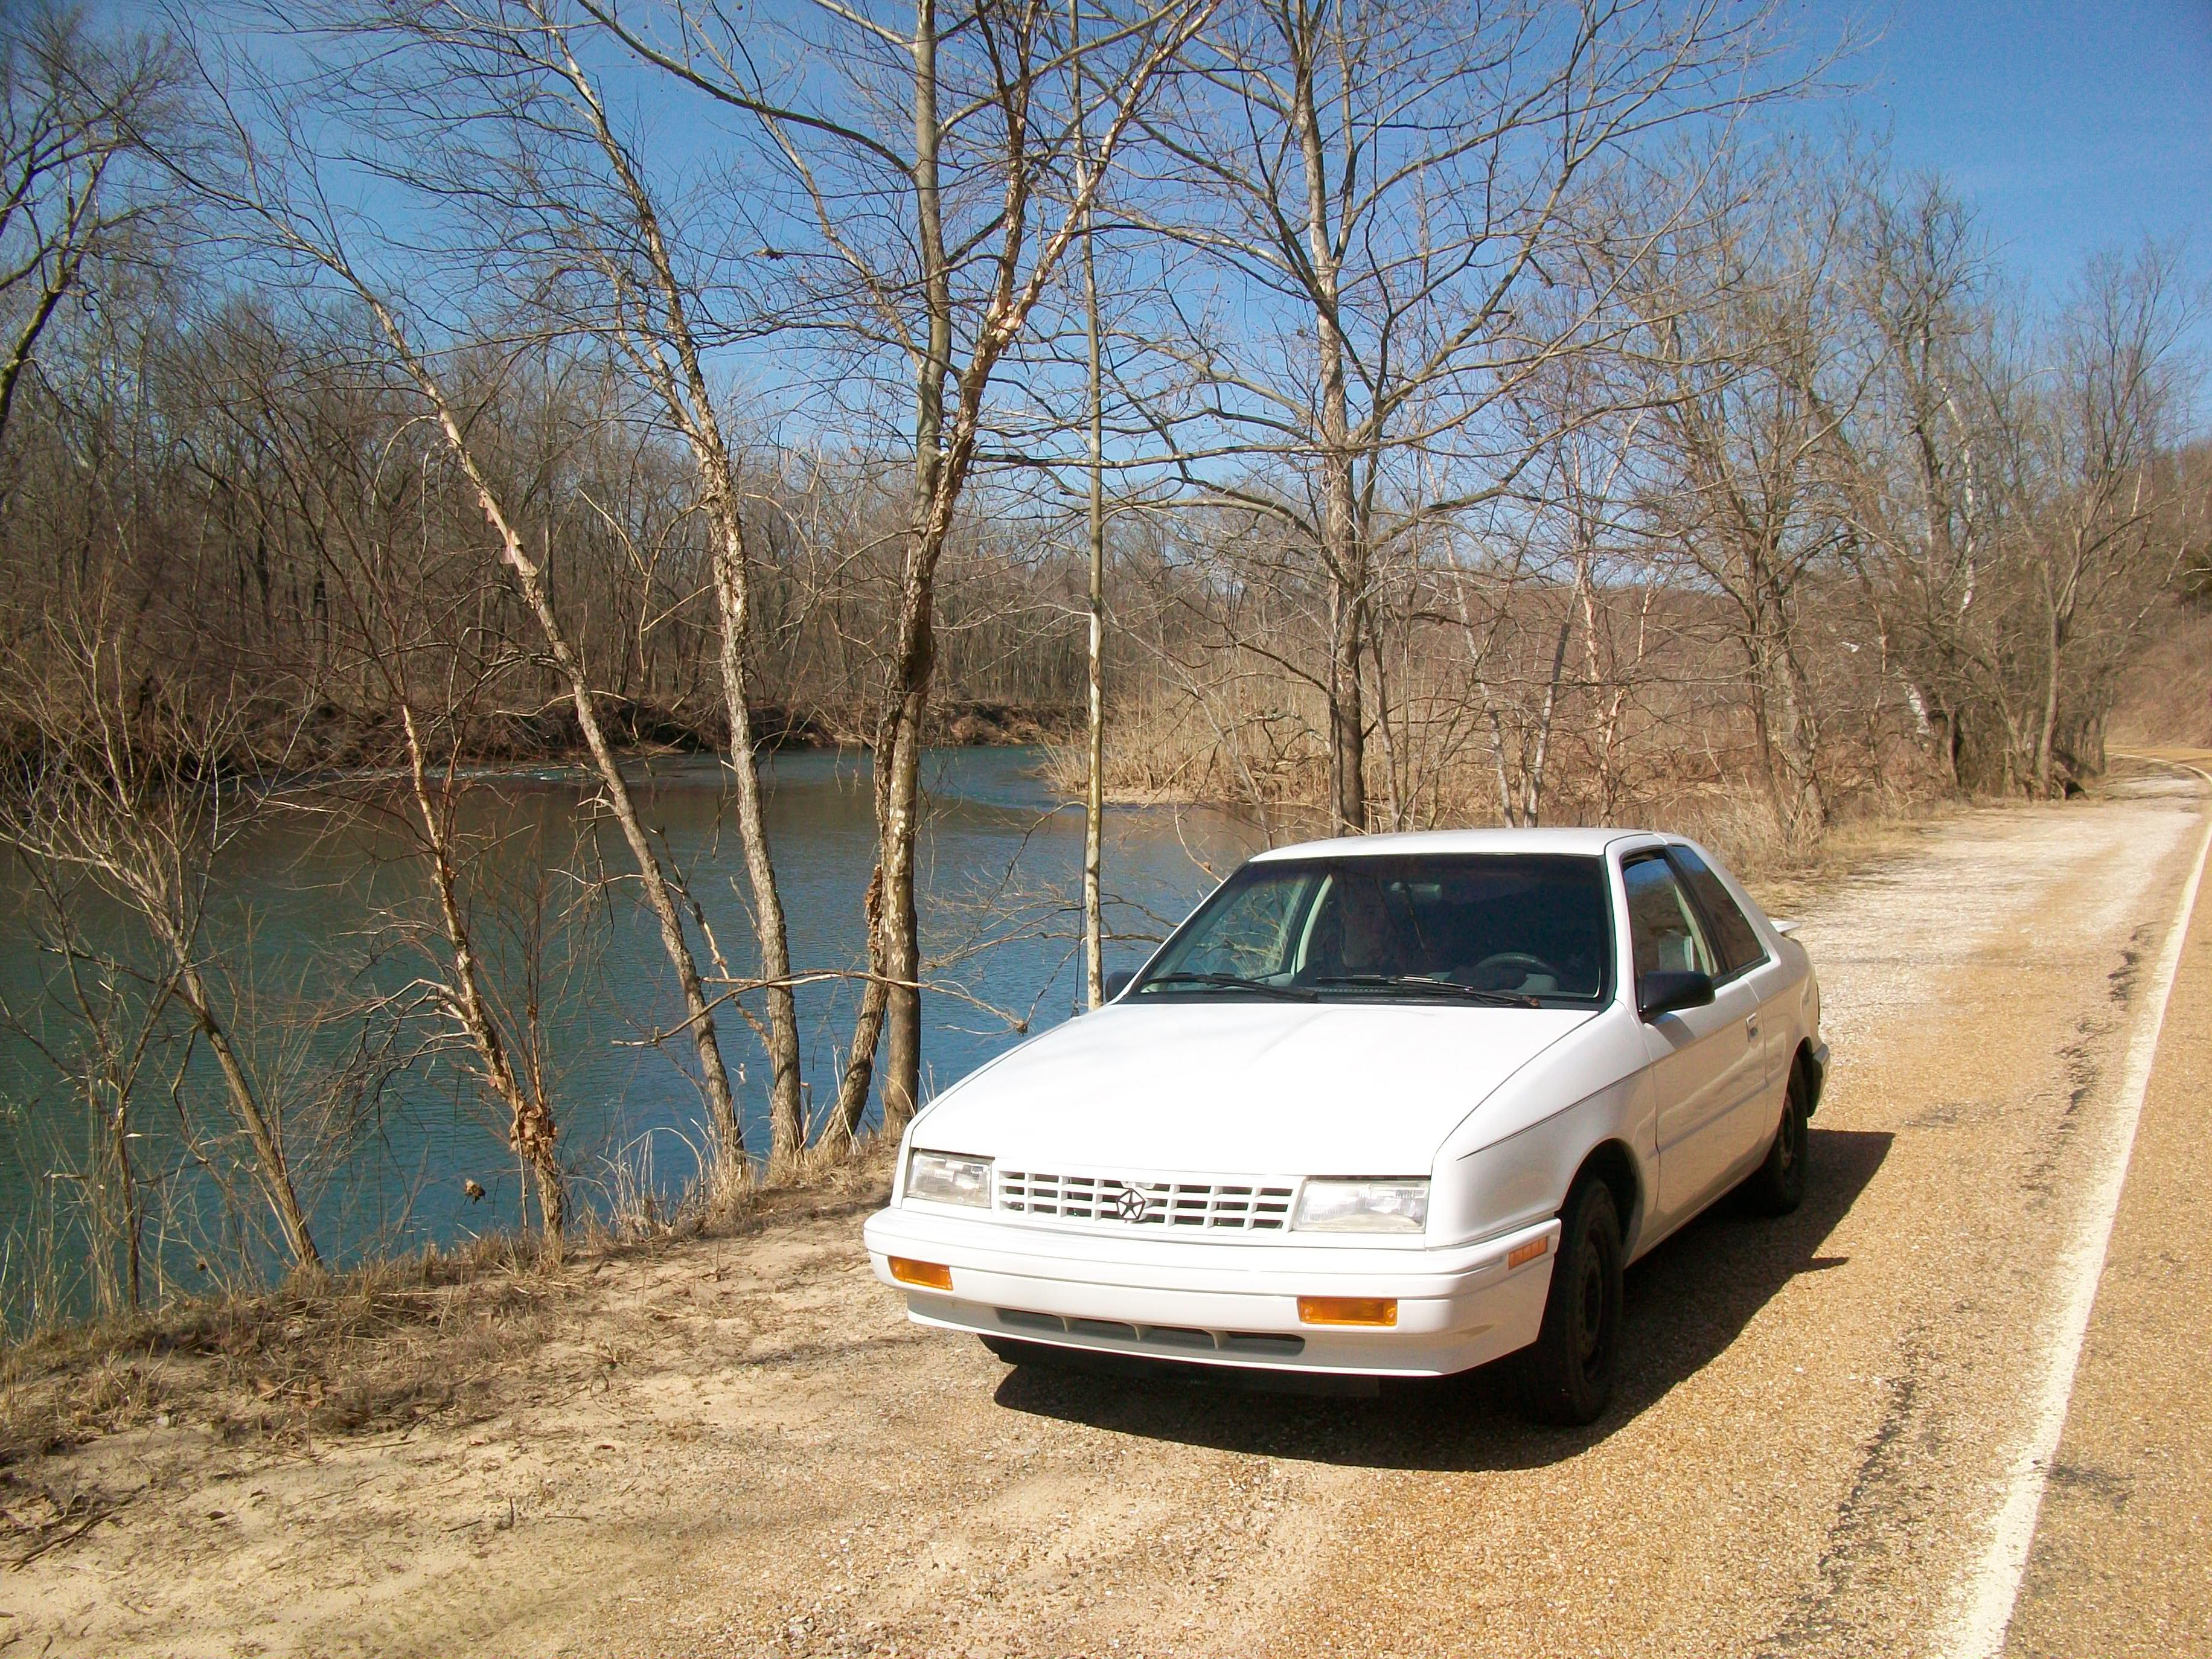 DaydreamBlvr 1992 Plymouth Duster